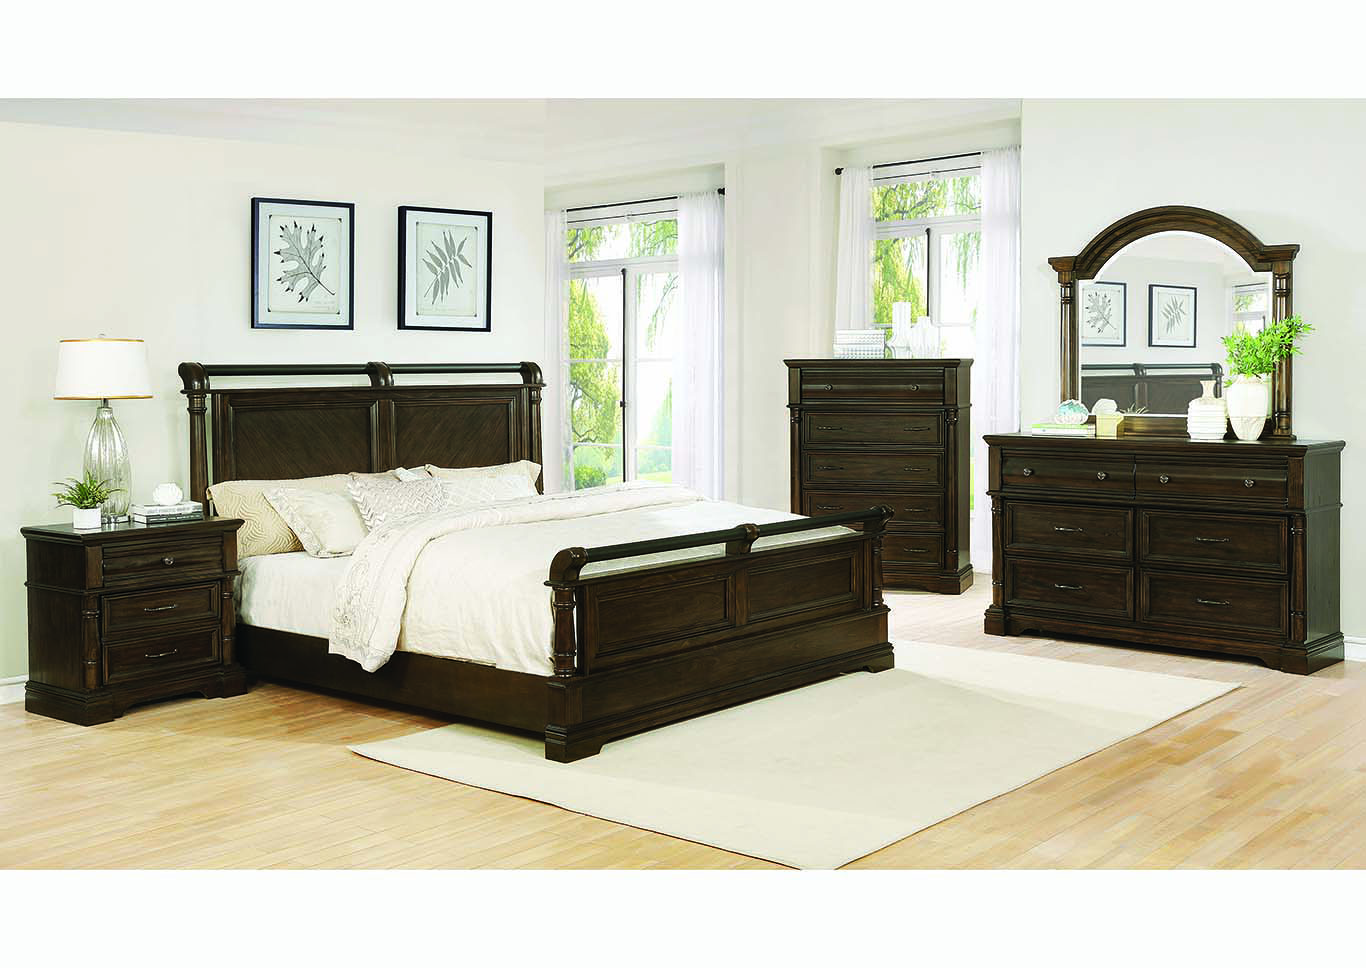 Chandler Heirloom Brown Eastern King Sleigh Bed w/Dresser & Mirror,Coaster Furniture